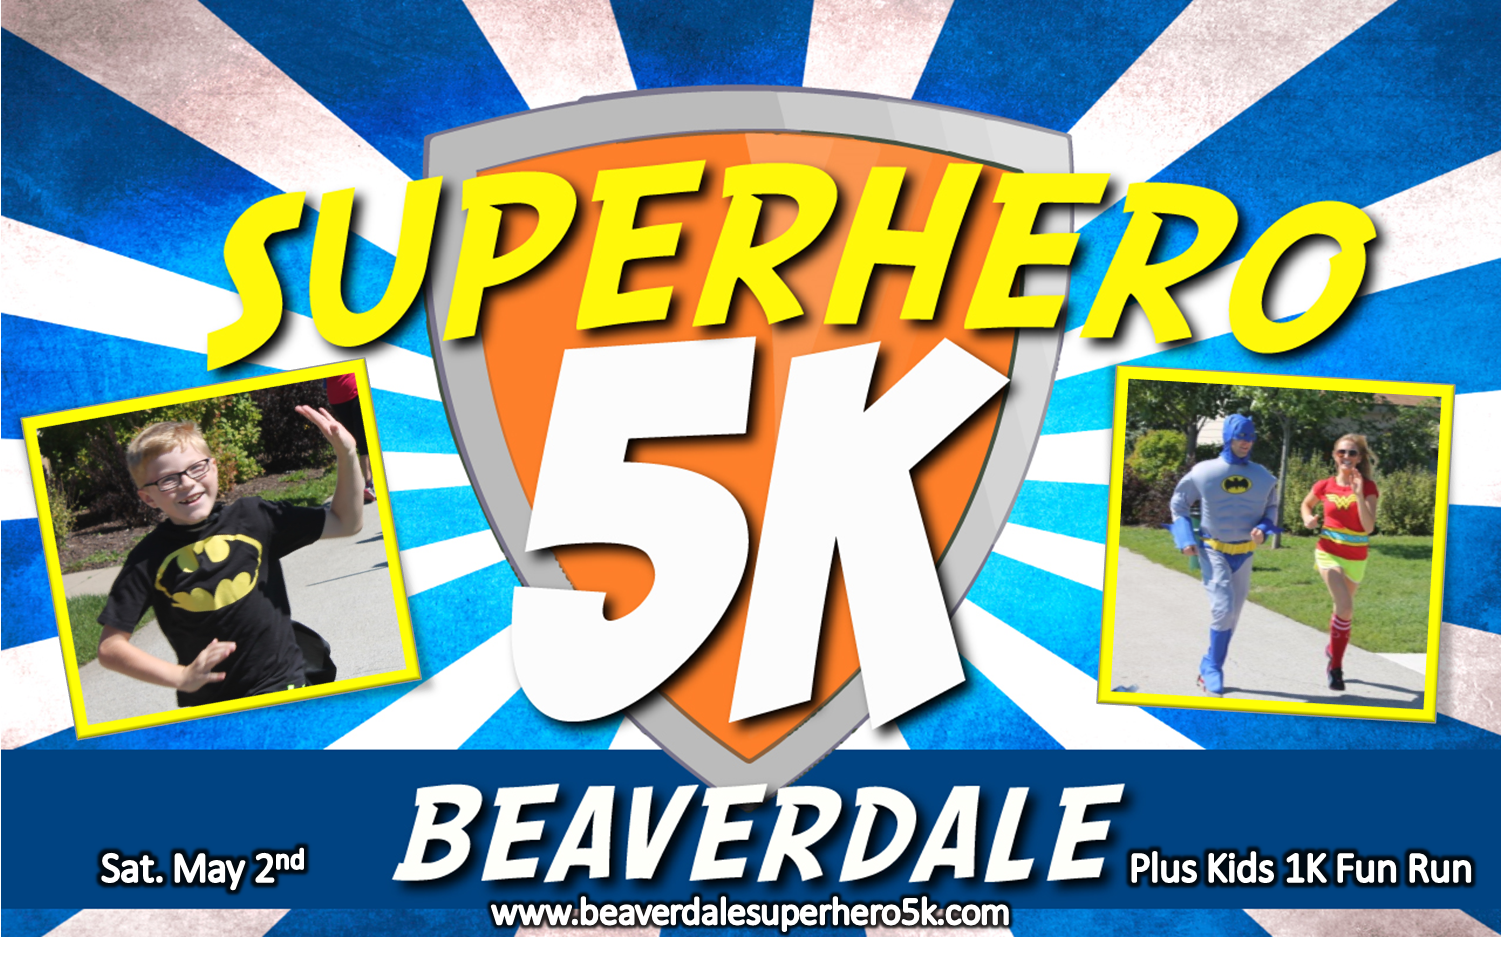 Everybody can be a SUPERHERO – The Beaverdale Superhero 5k